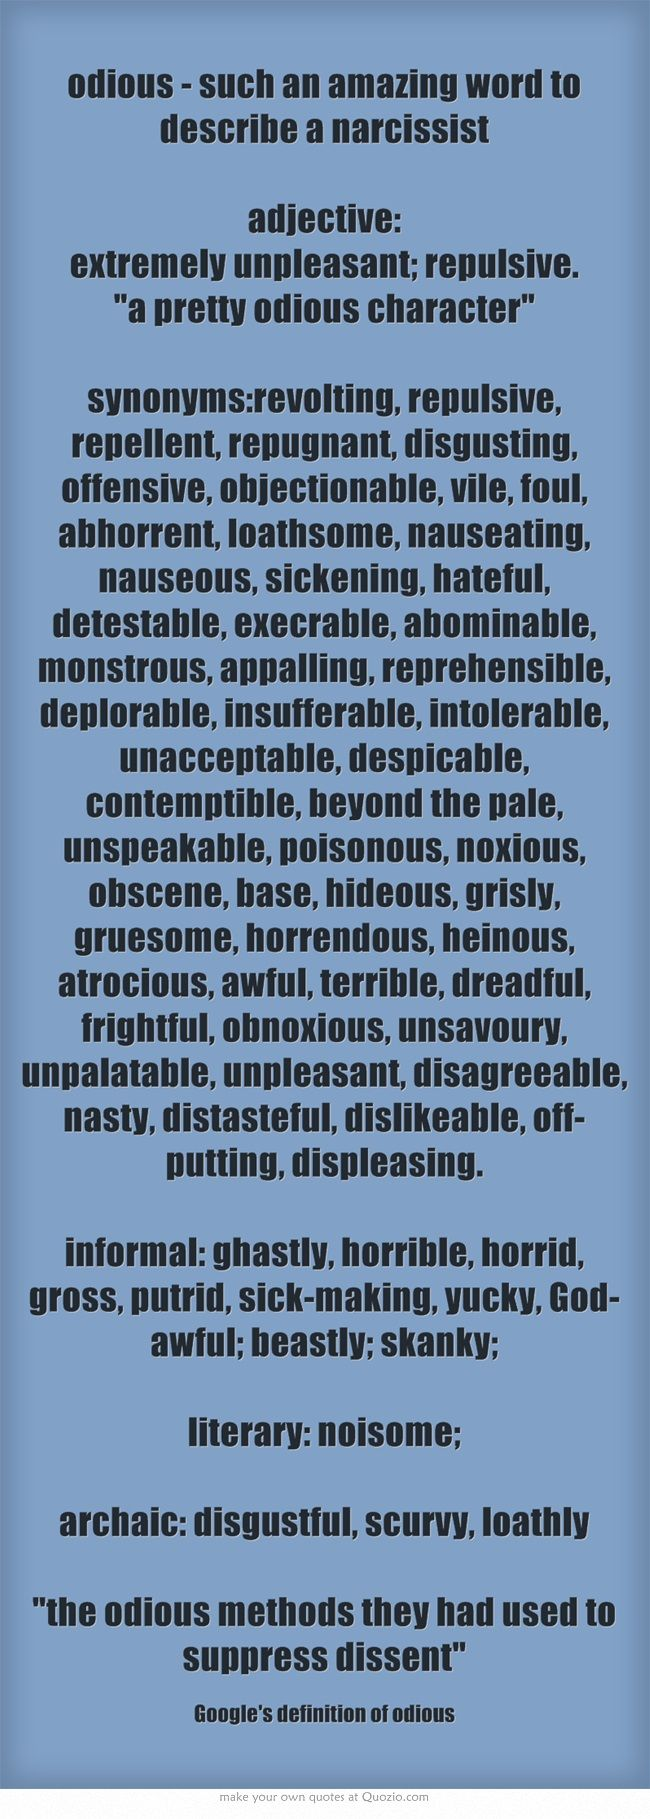 odious - such an amazing word to describe a narcissist ...